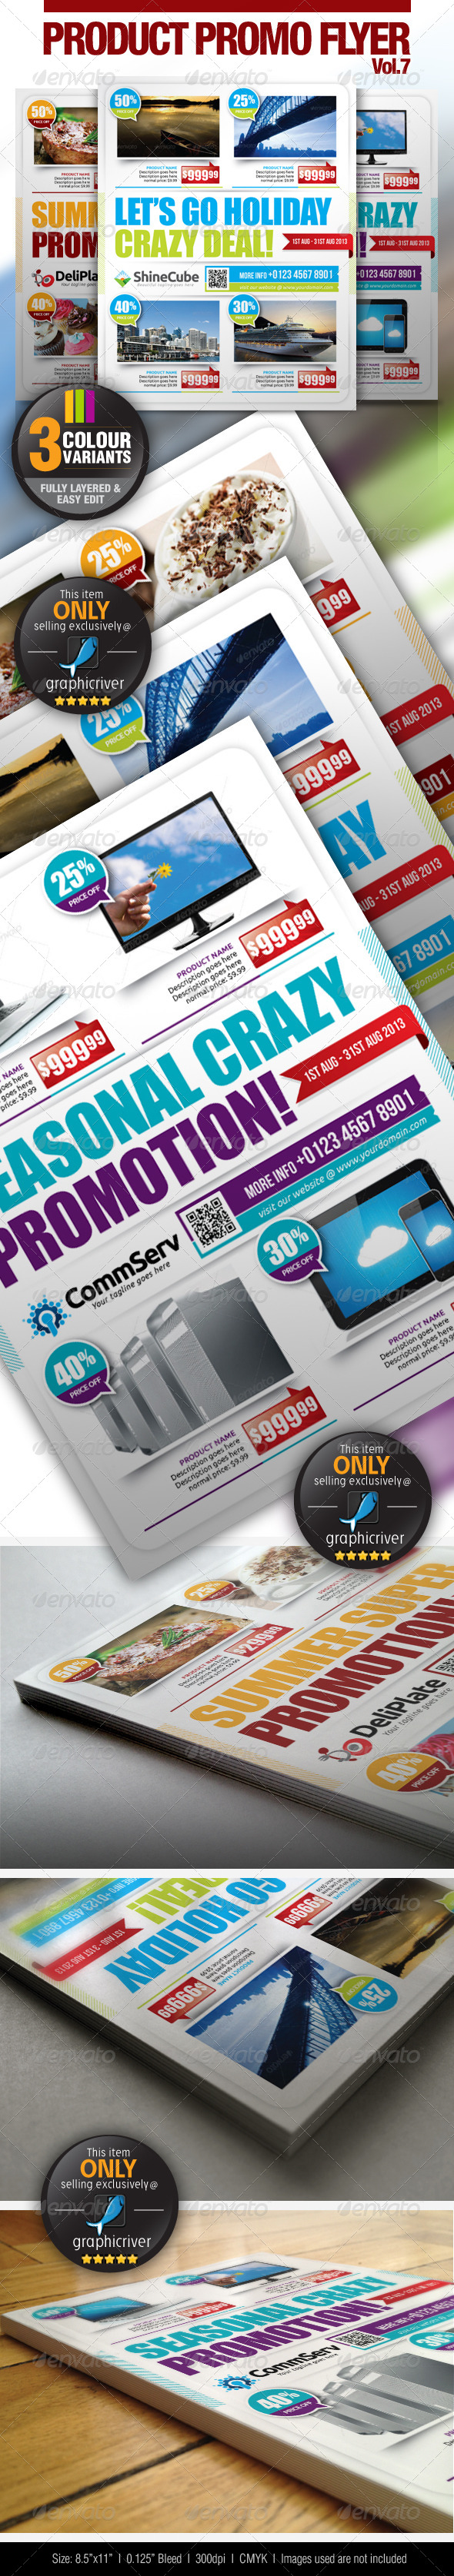 Multi-Purpose Product Promotion Vol.7 - Commerce Flyers